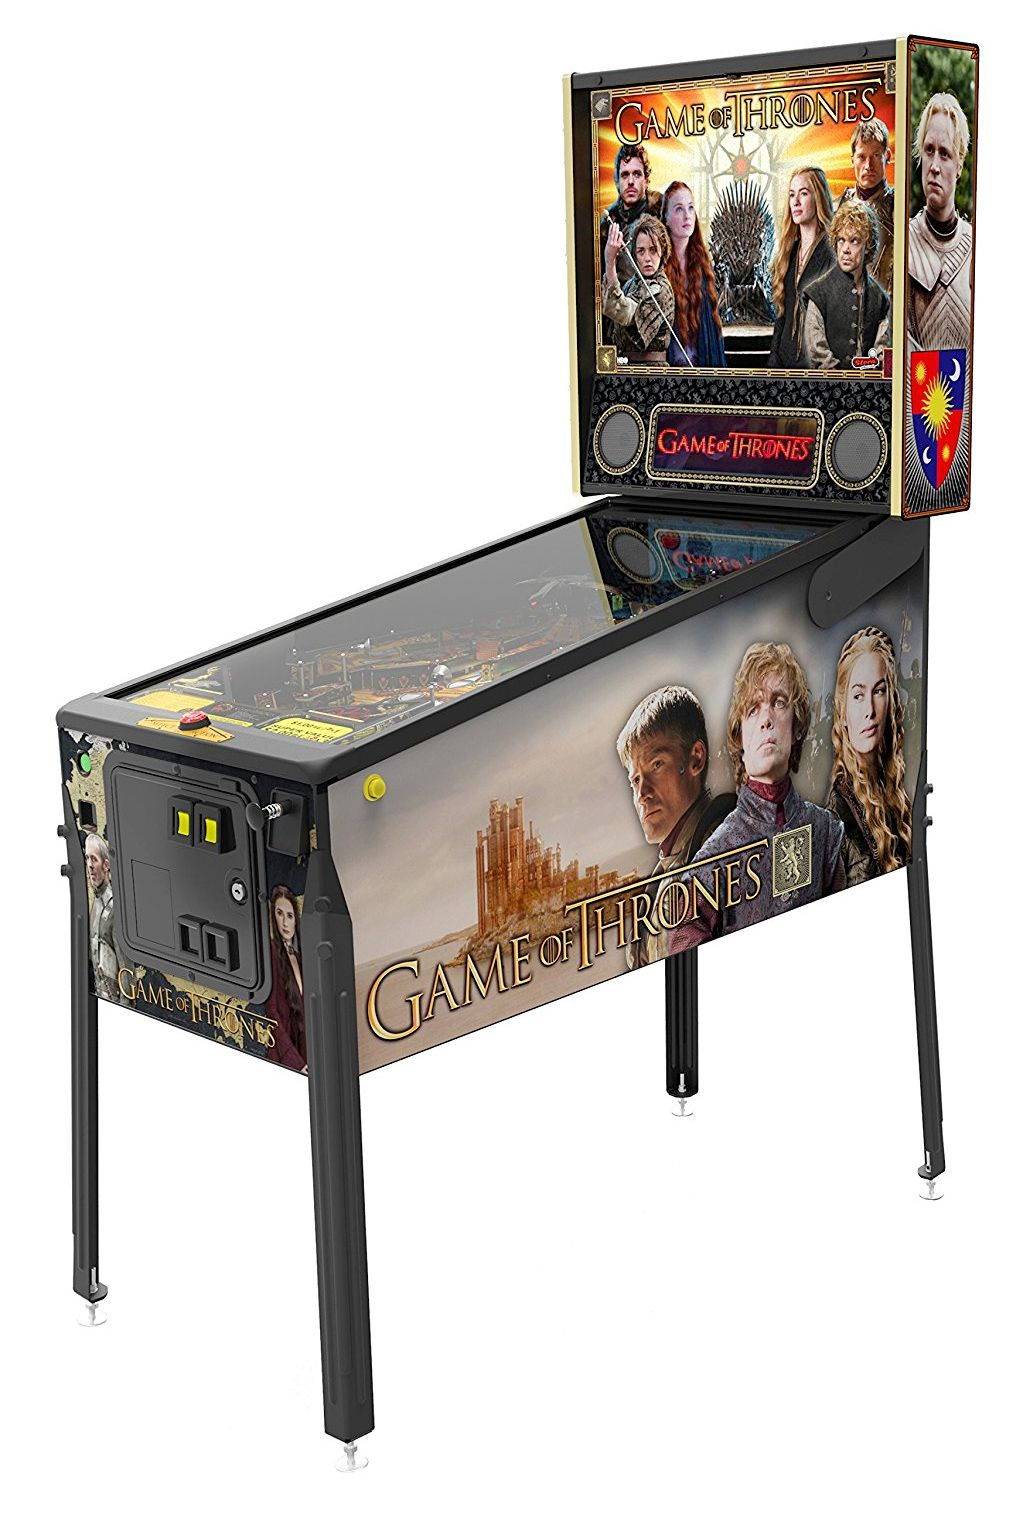 Game-of-Thrones-Pinball-Pro-Arcade-Pinball-Machine-07